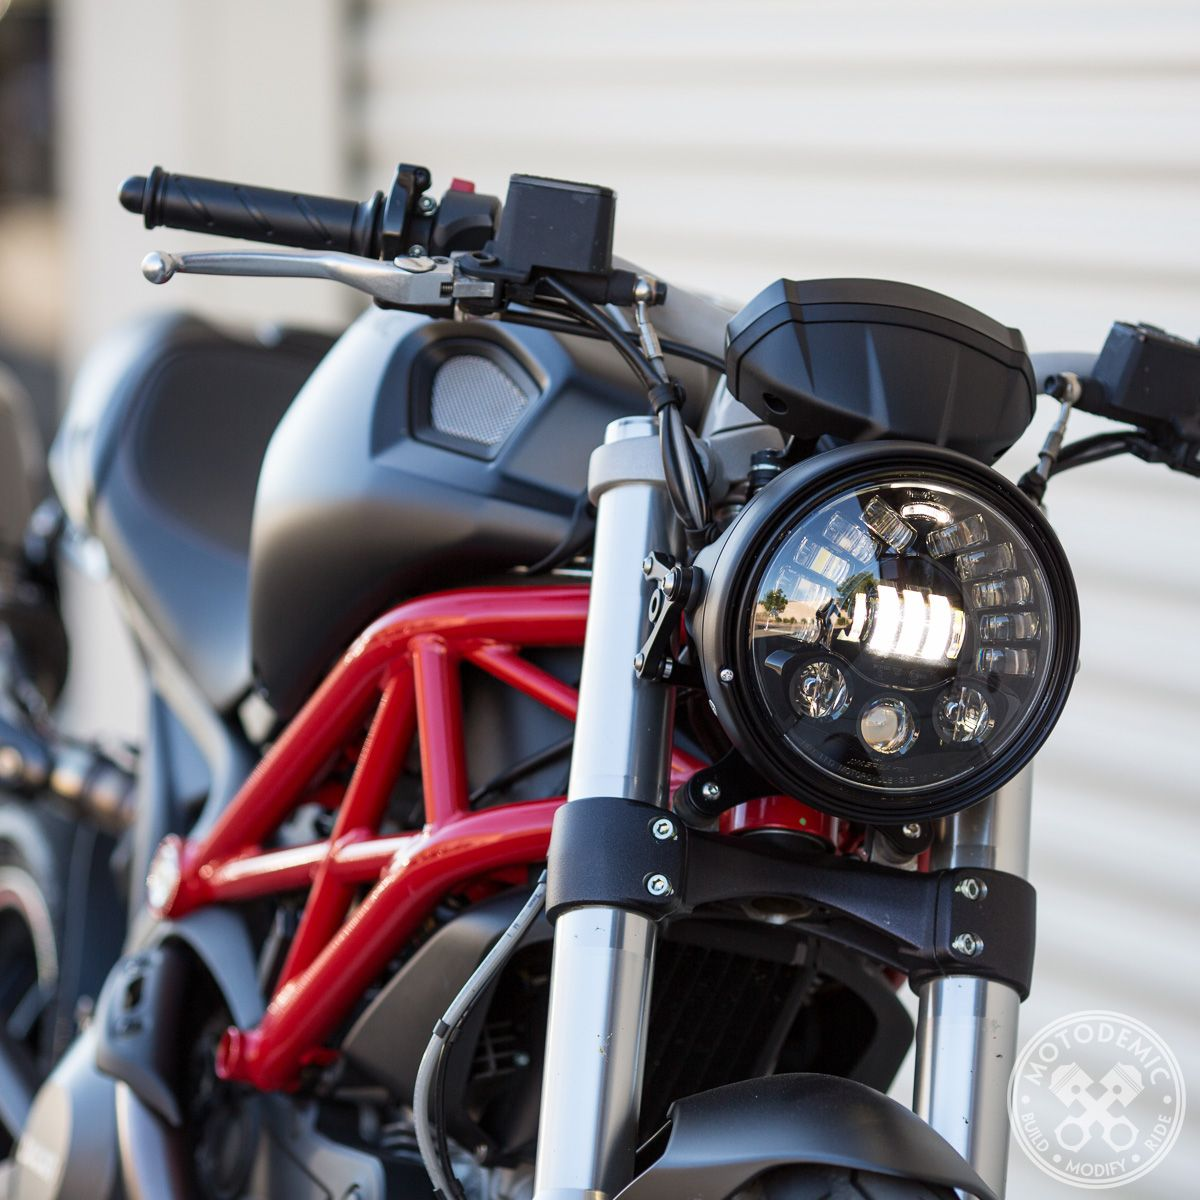 ducati monster headlight conversion 696 796 1100 motorok pinterest moto accessoire moto. Black Bedroom Furniture Sets. Home Design Ideas